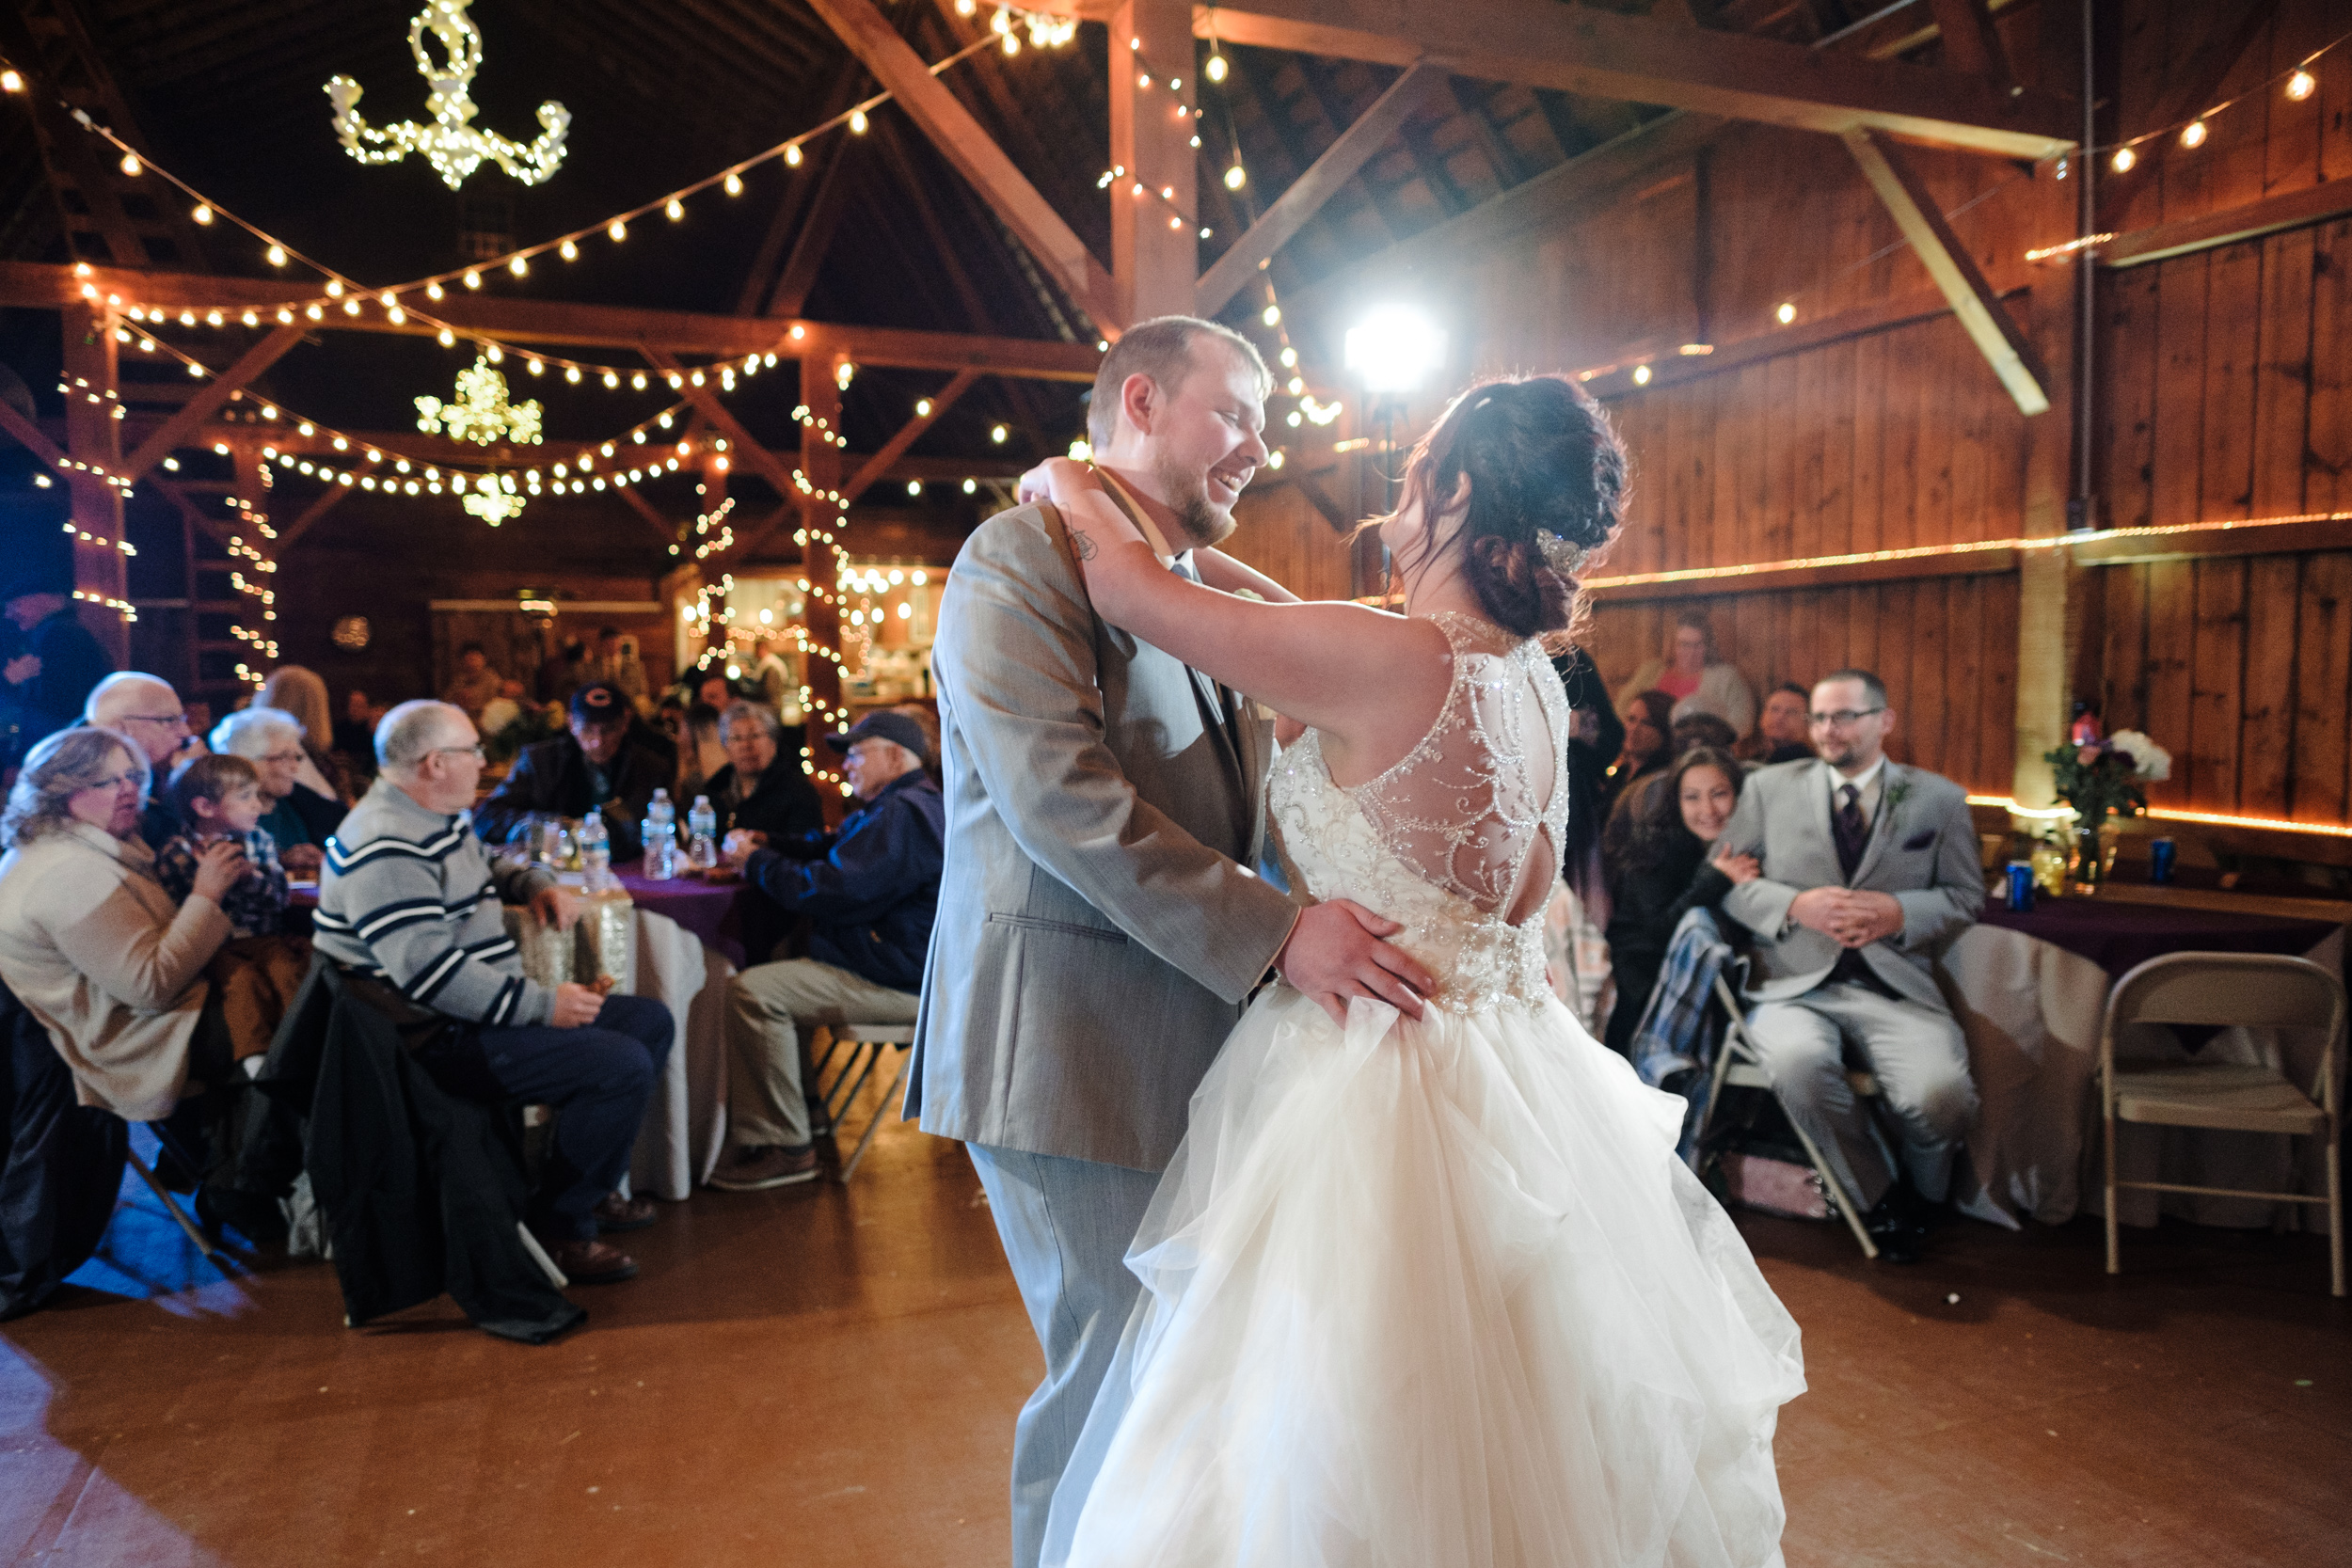 Andrea Caleb Happily Ever After Barn Wedding-40.jpg